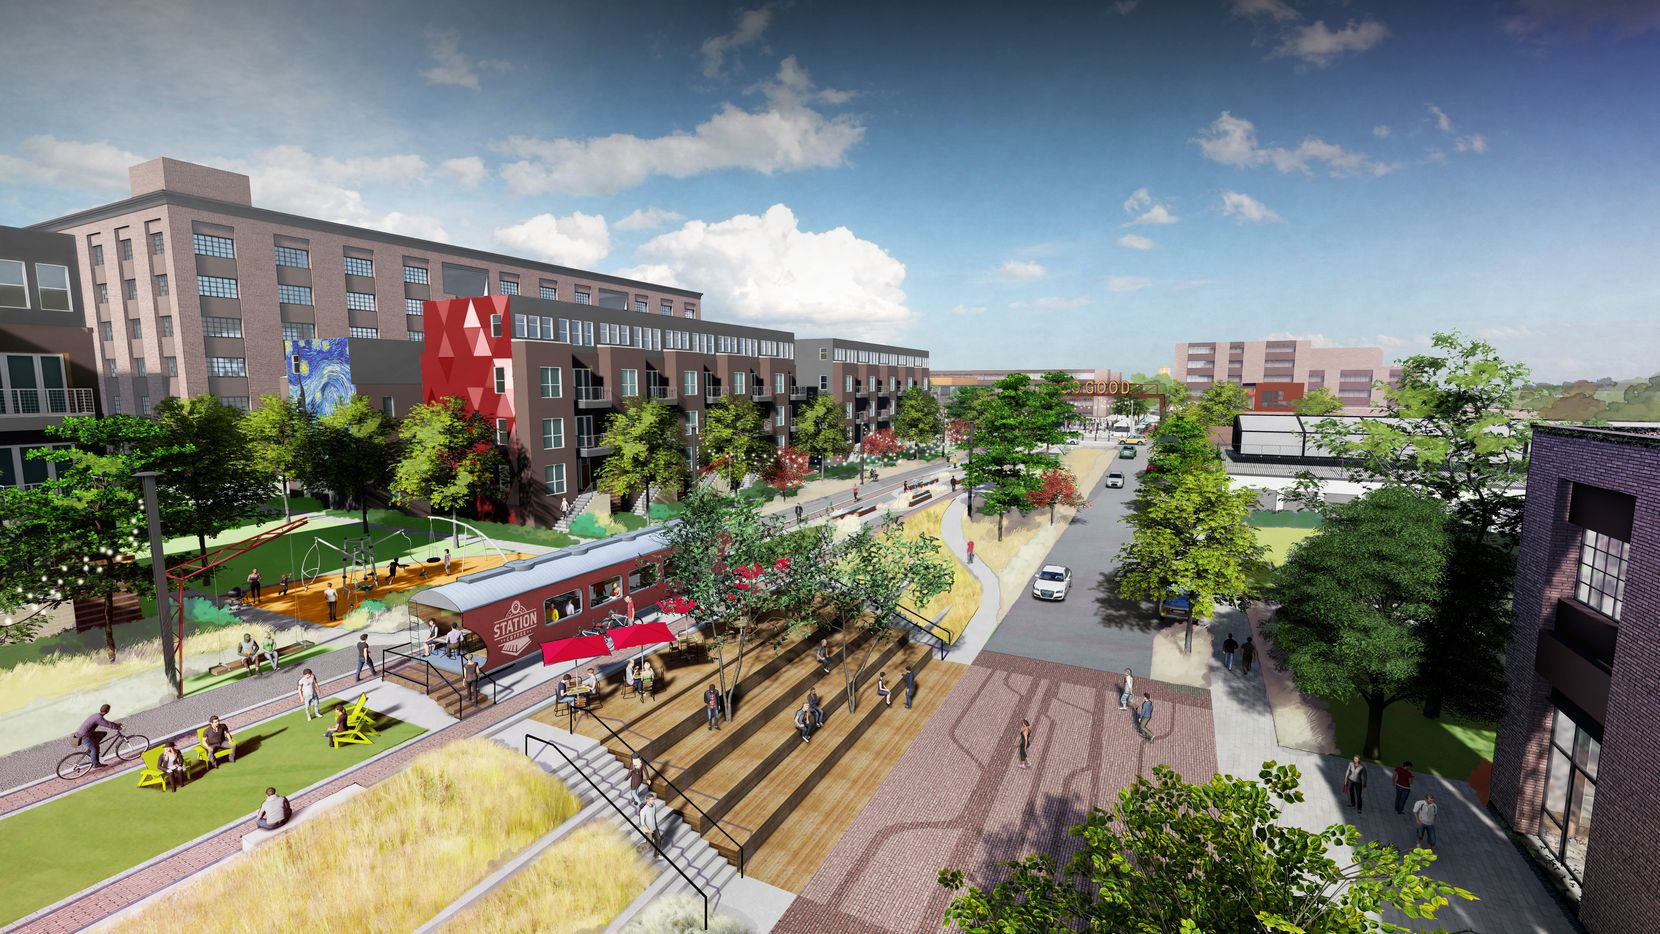 The SoGood mixed-use project planned south of downtown Dallas would have blocks of new apartments, shops and commercial space along a linear park.